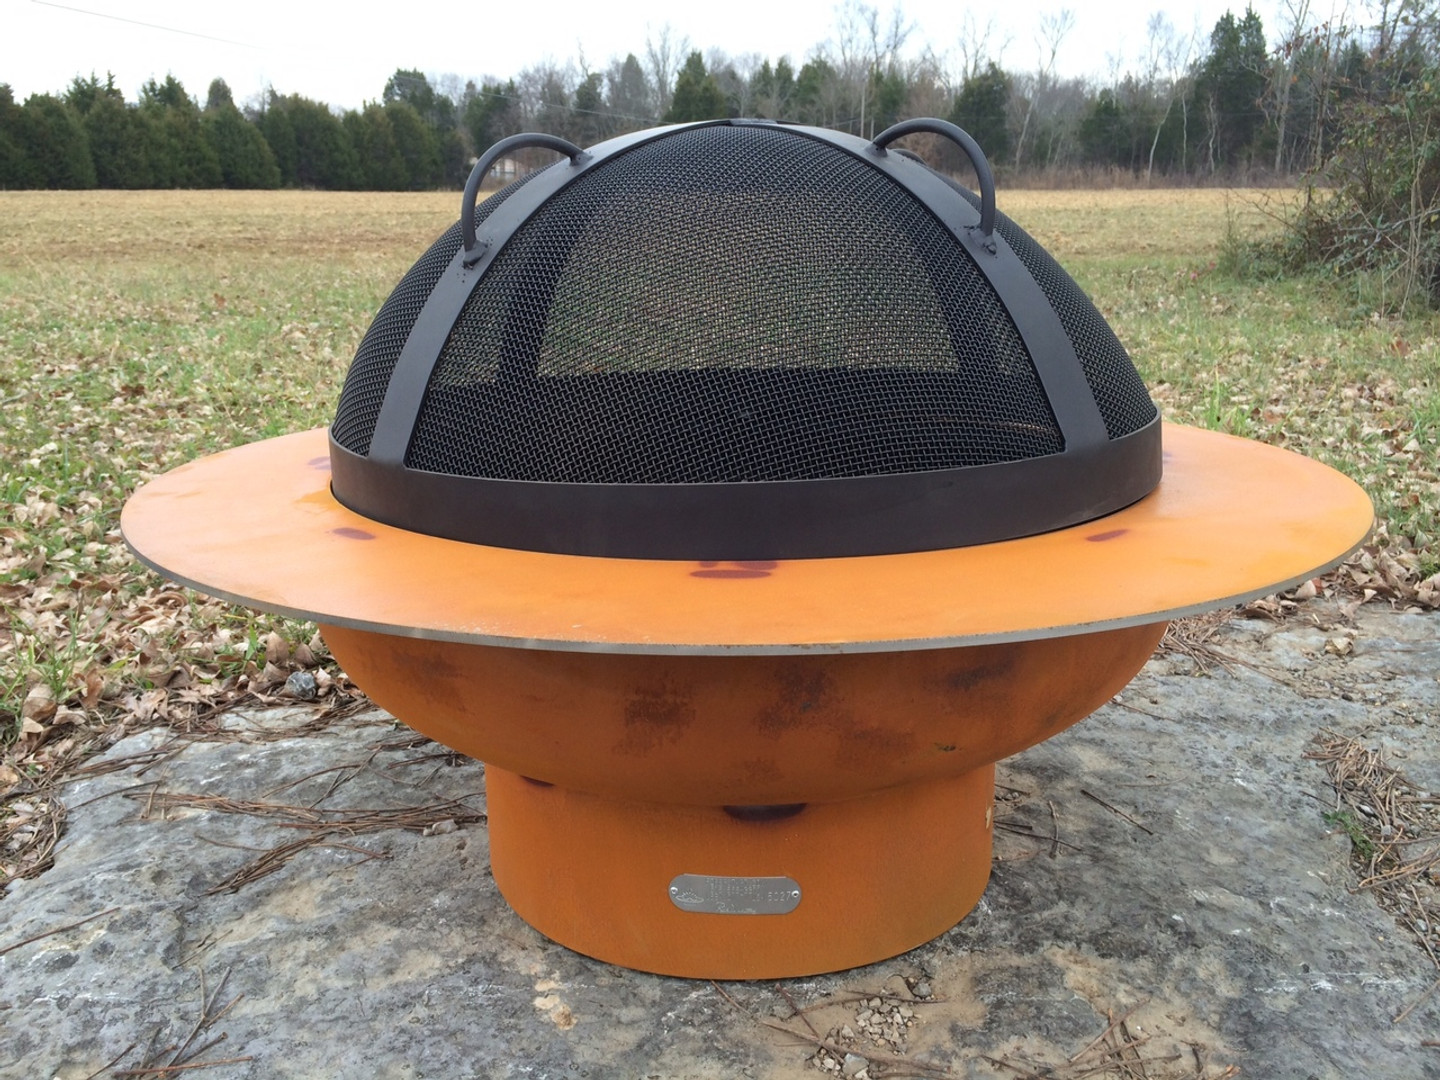 "The SG-27.5"" Artisan Spark Guard is handcrafted to rest on the tabs welded on the ID (inner diameter) of the Saturn bowl.  The SG-27.5 is designed to specifically fit Saturn and no other Fire Pit Art offering."